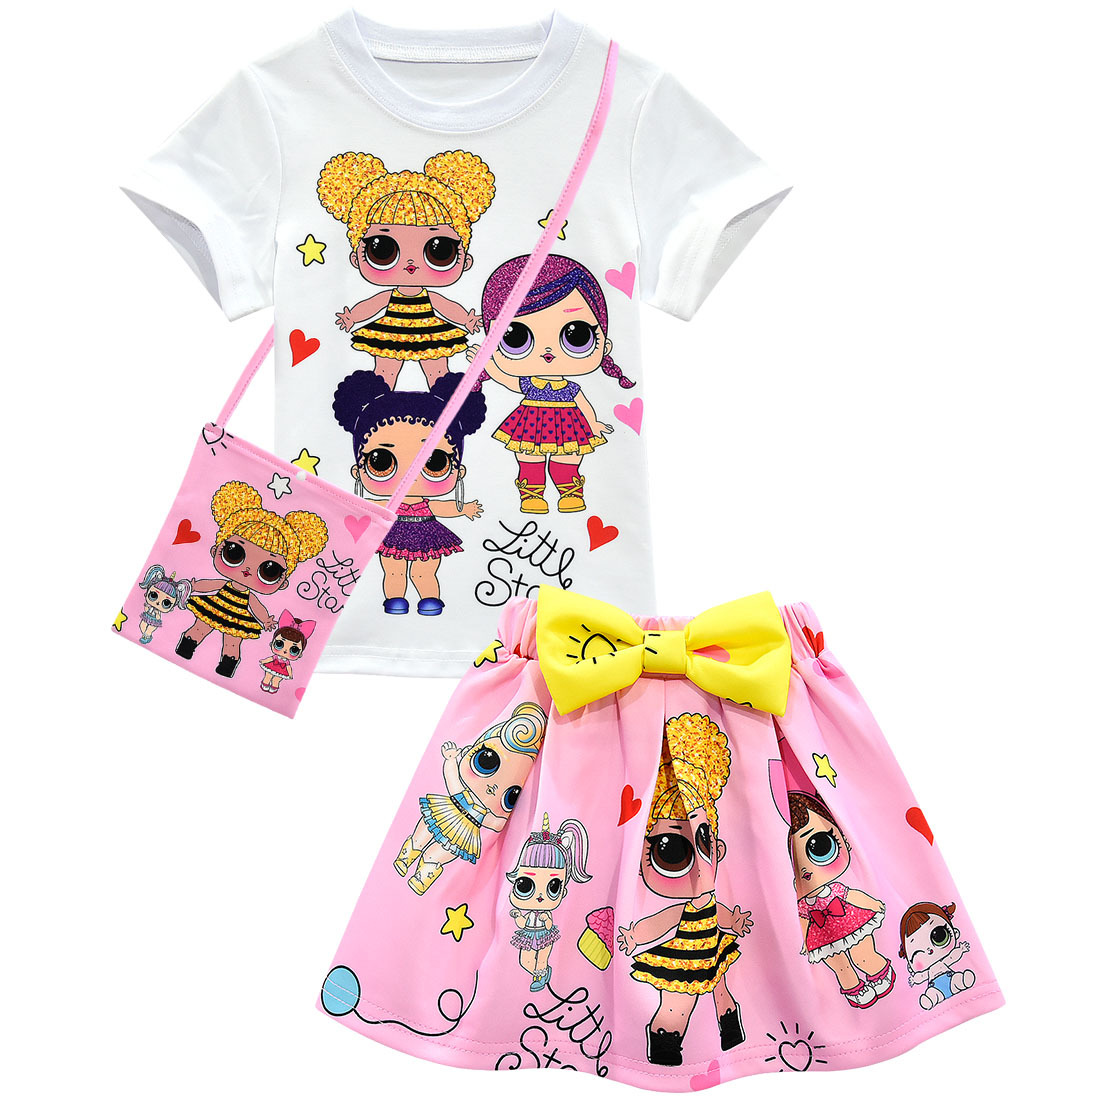 Summer Toddler Girls Lol Clothes Sets Baby Cartoon Dolls Kids Clothing Cotton T-shirt And Skirt Bag Outfit Princess Dress Girl